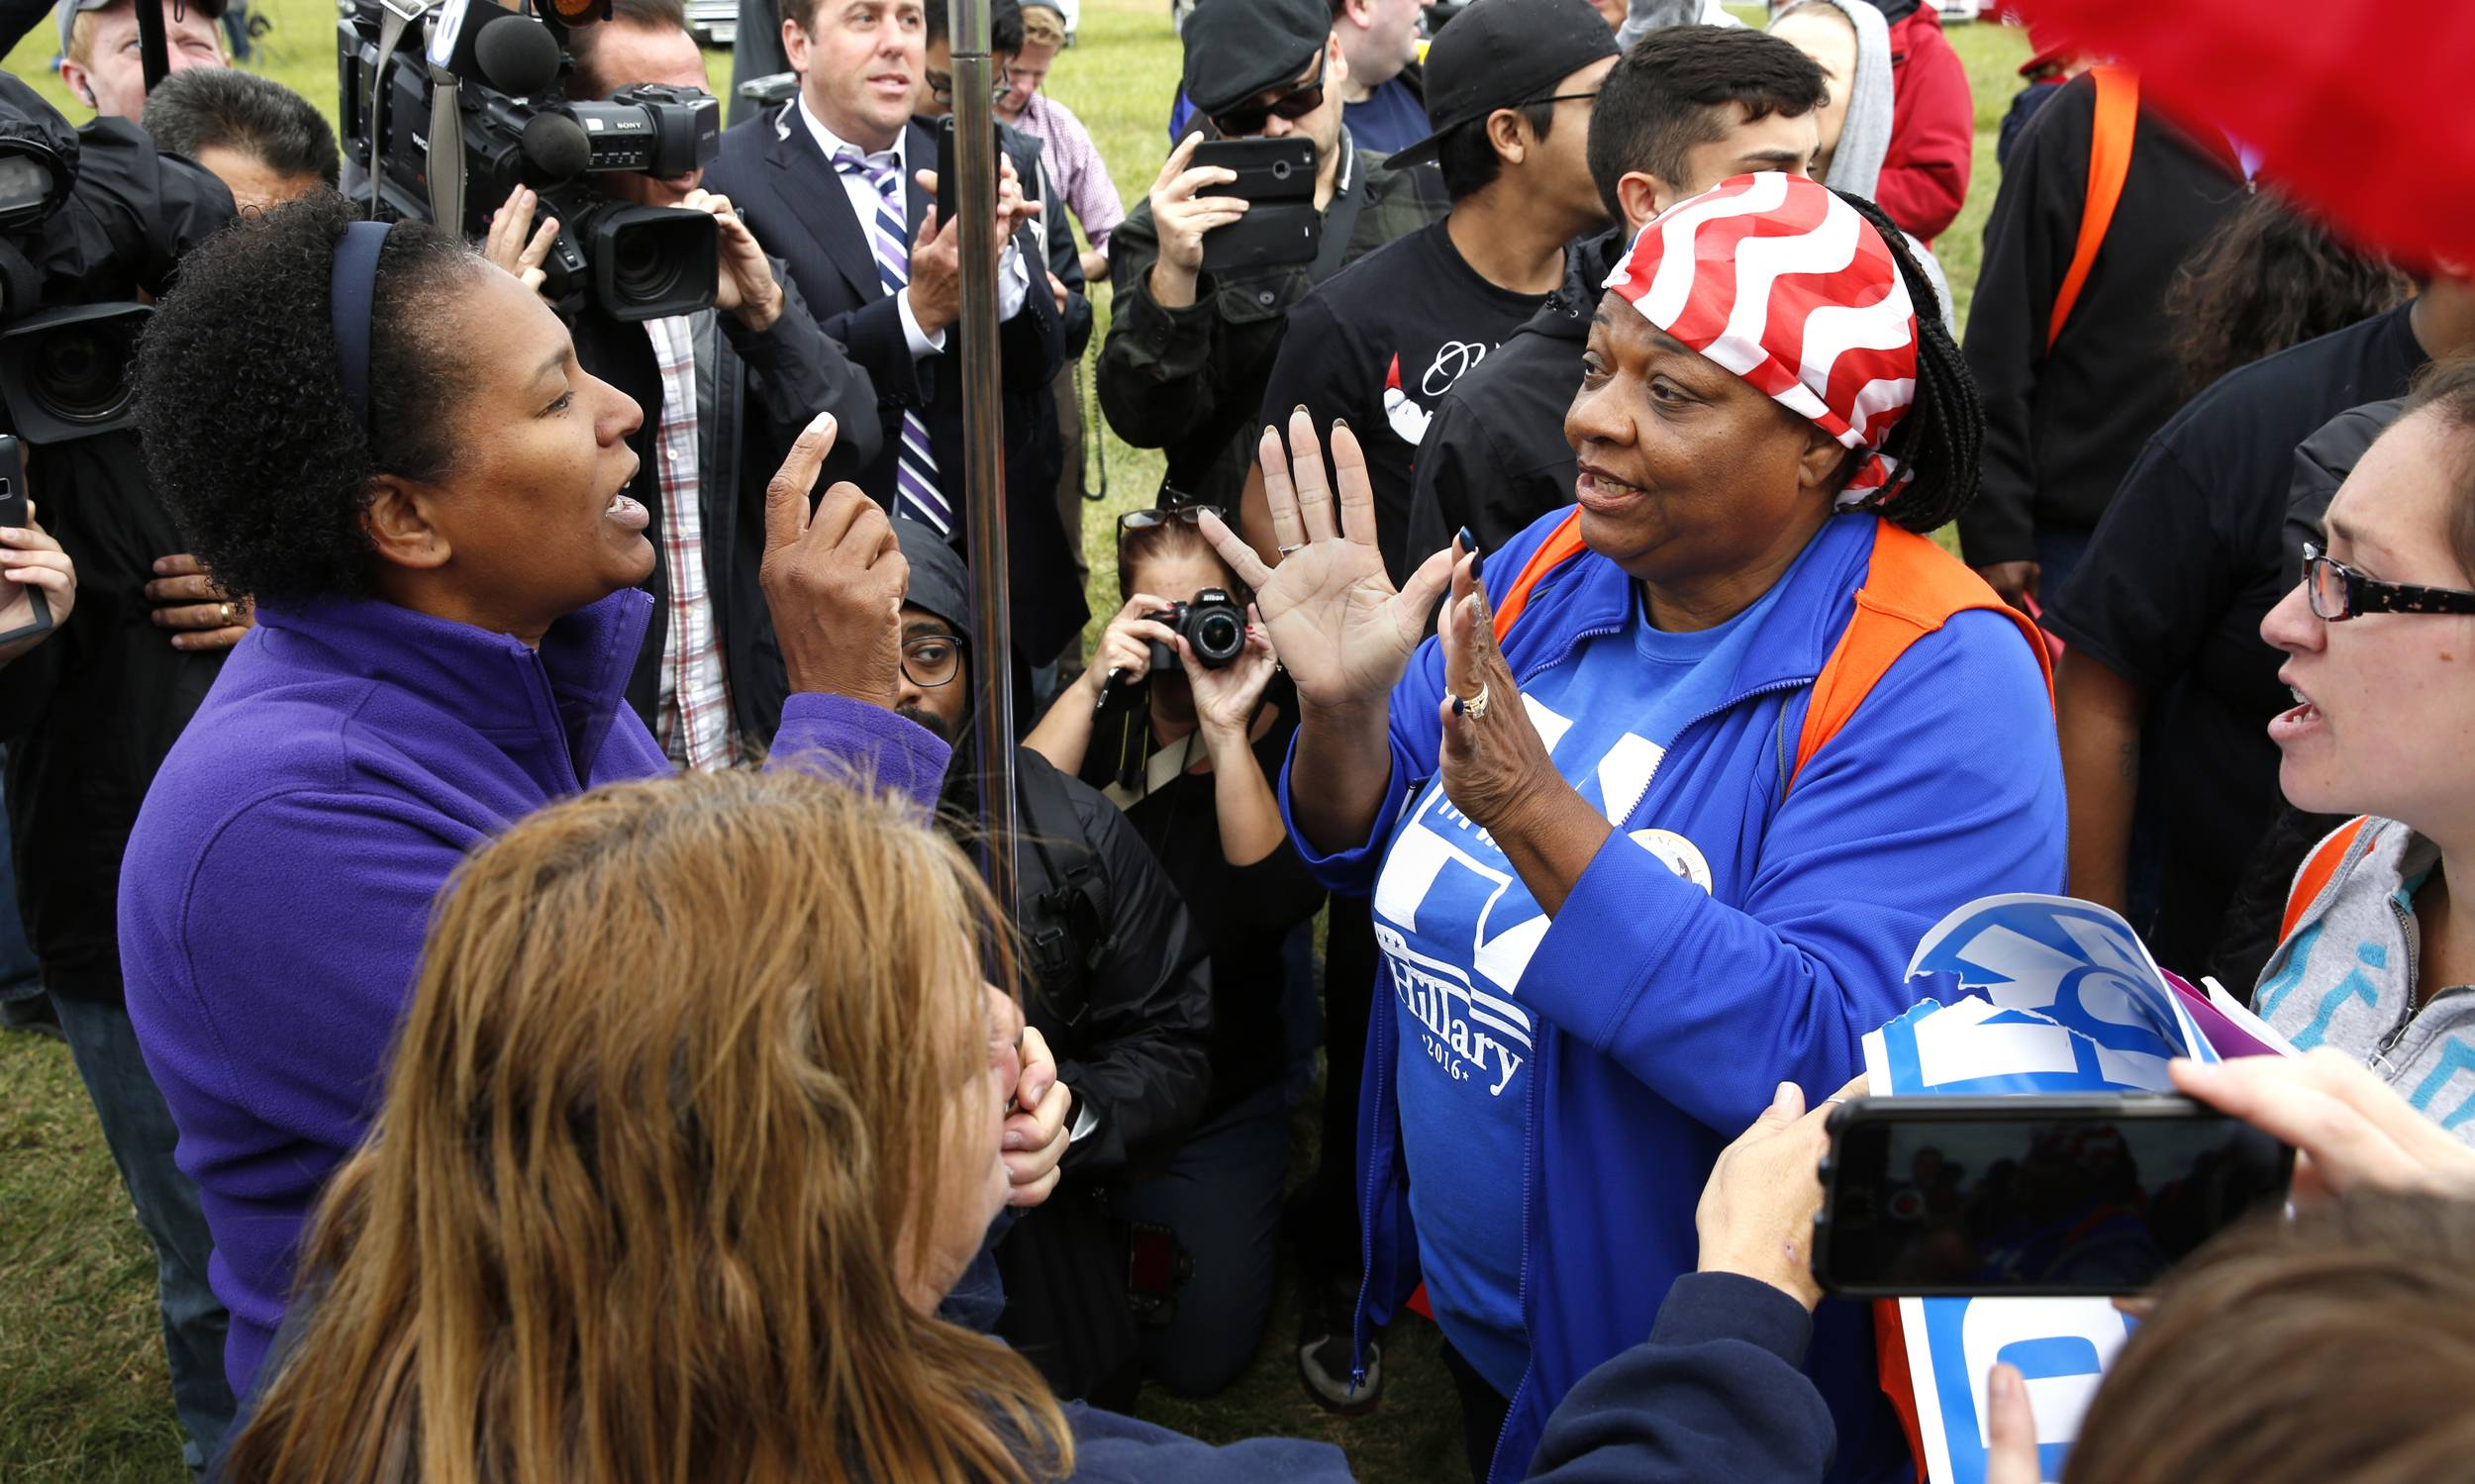 Trump supporter Stephanie Trussell of Lisle, left, debates with Clinton supporter Ruby Lofton of Bolingbrook outside the Bolingbrook Golf Club during a fundraiser Wednesday for GOP presidential nominee Donald Trump.